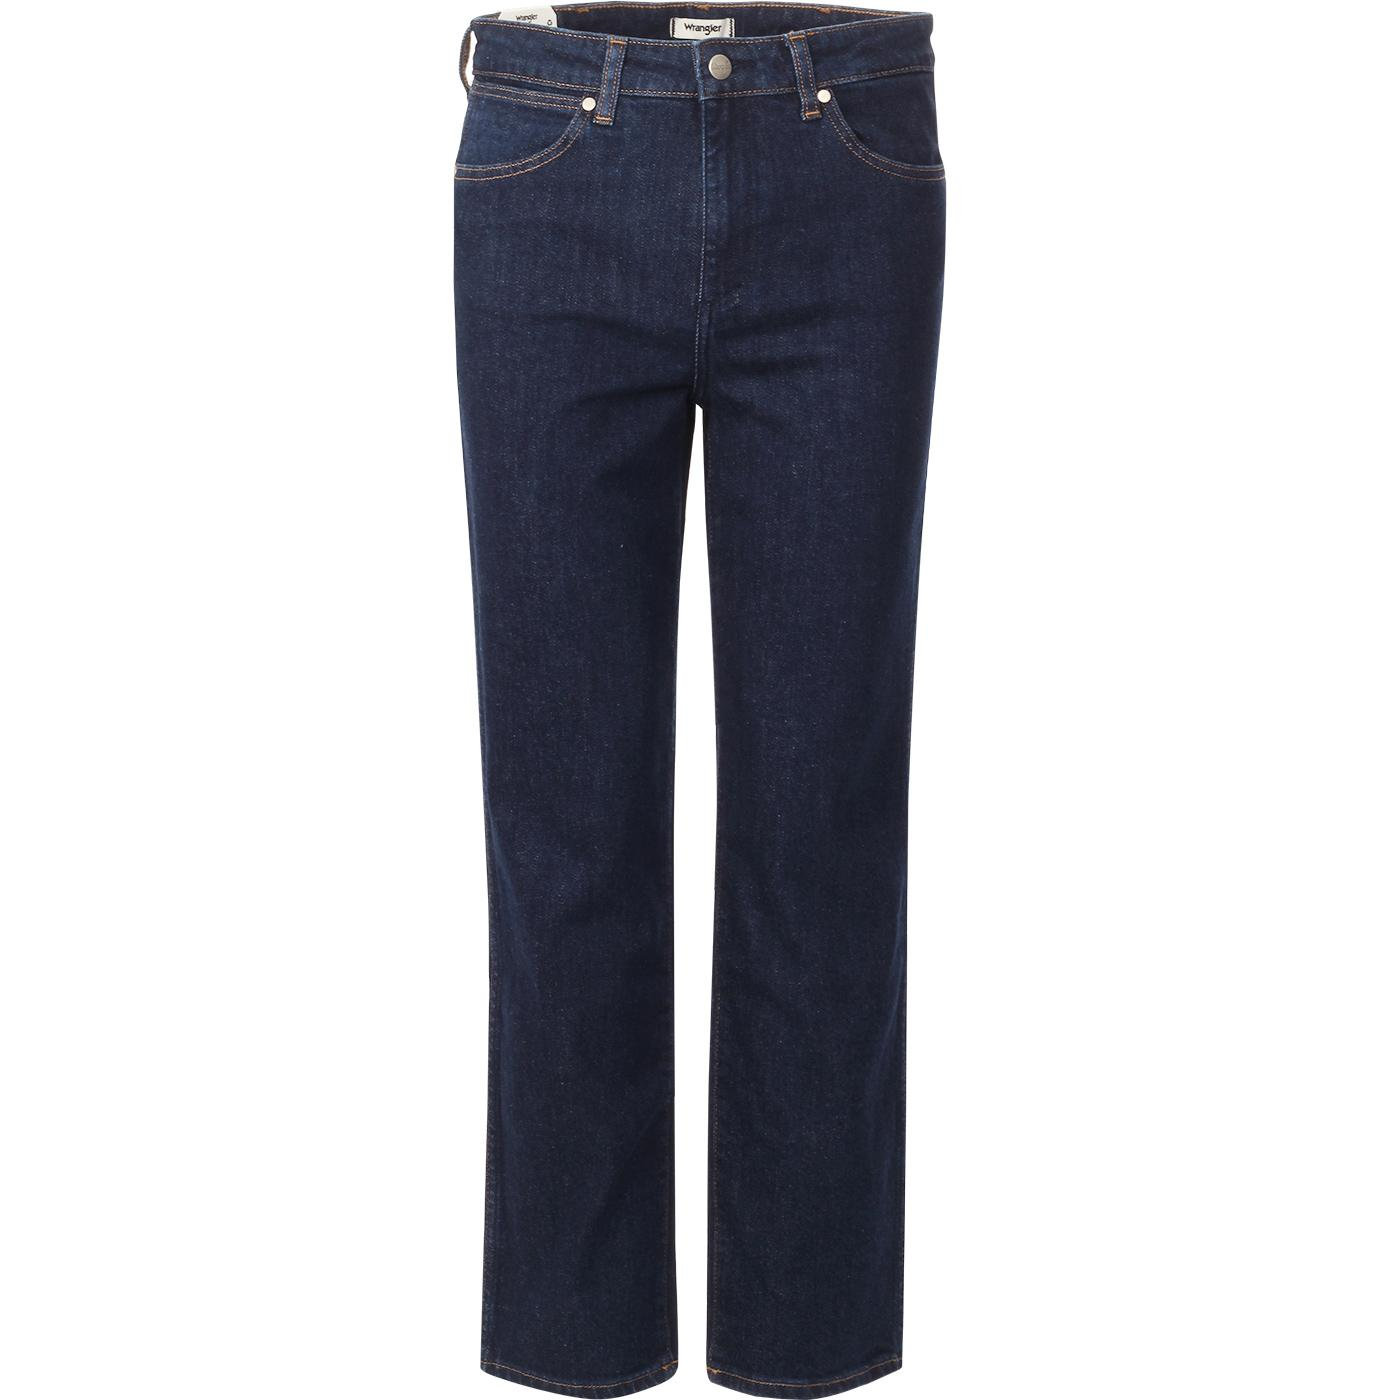 WRANGLER Retro Straight Denim Jeans (Dark Blue)